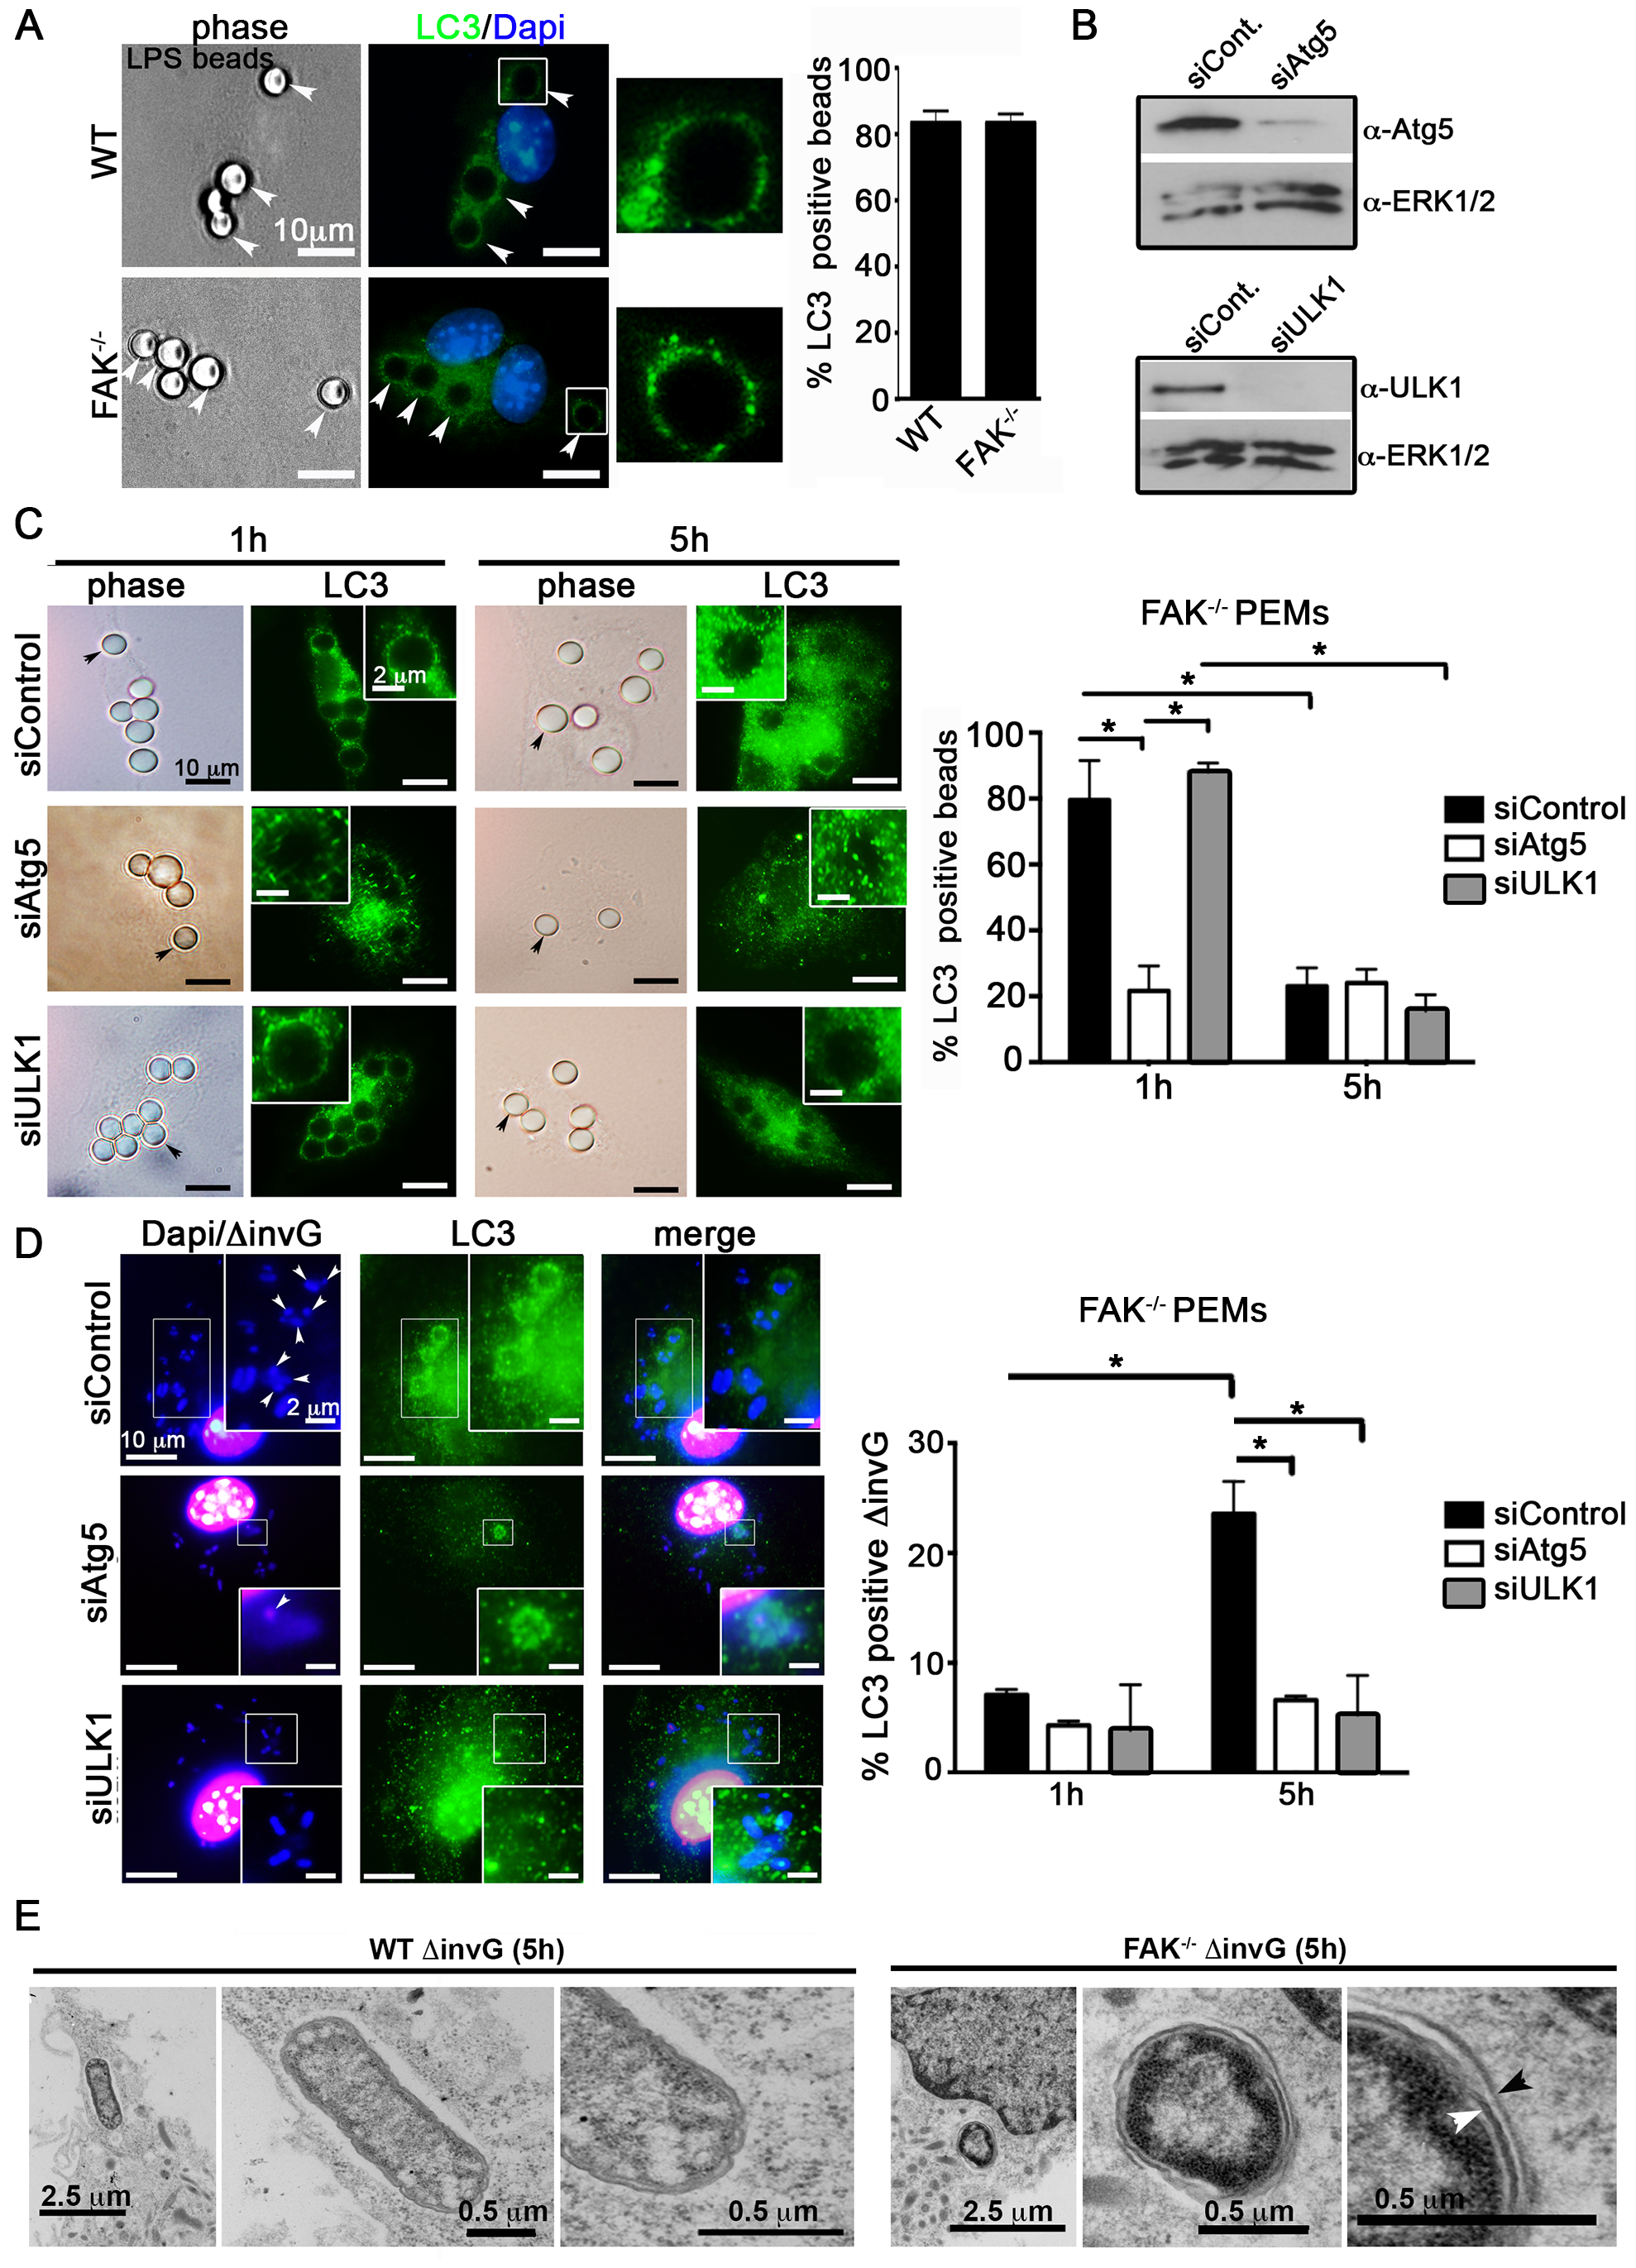 SPI-1-deficient <i>Salmonella</i> are targeted by autophagy in the absence of FAK.